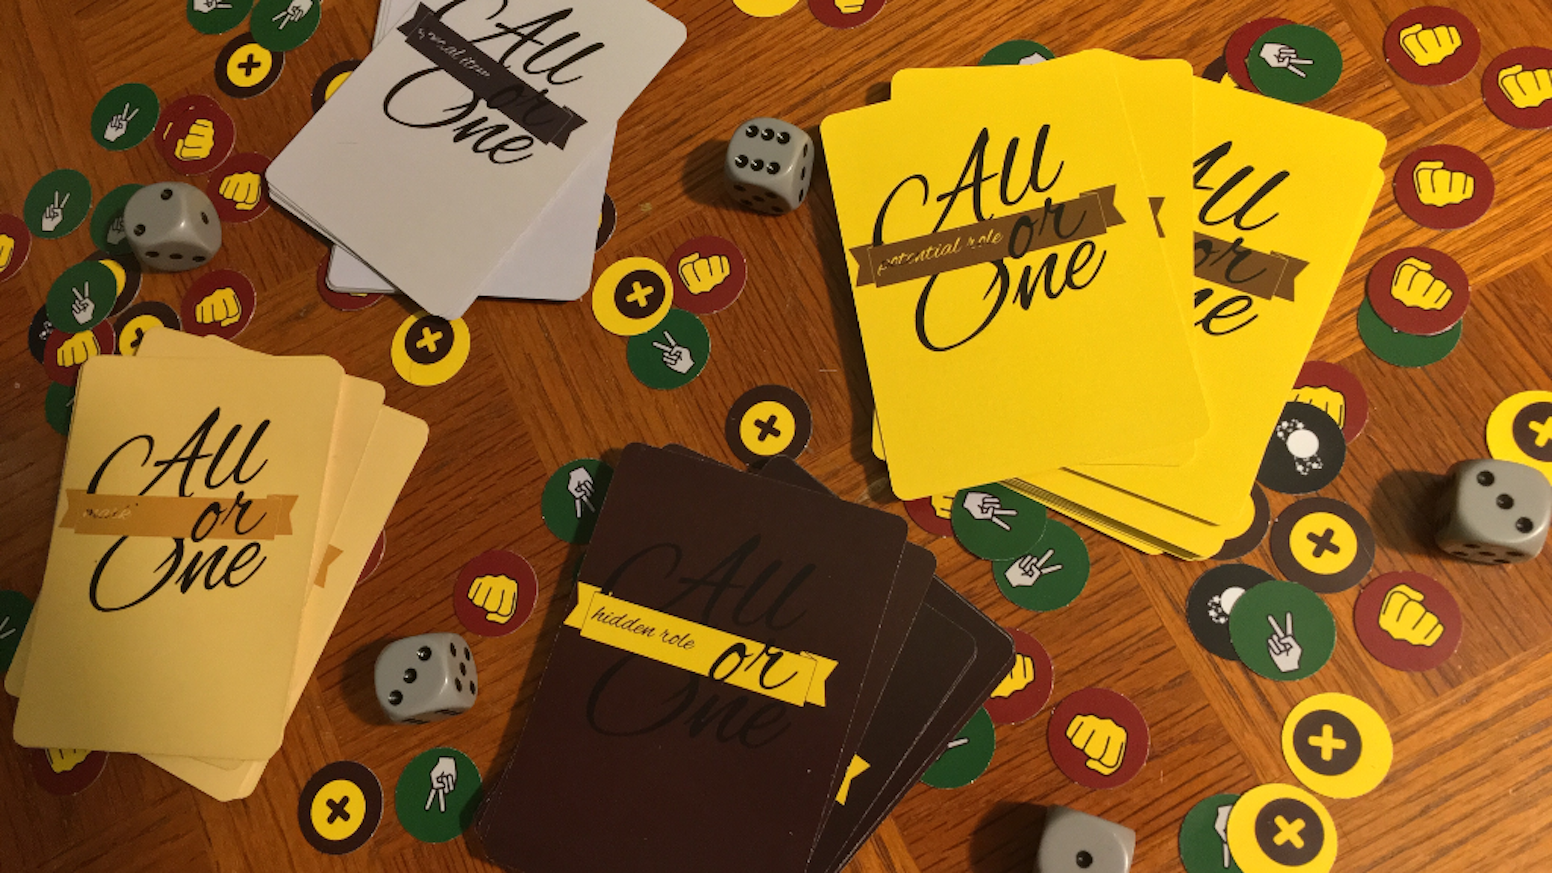 All or One is a hidden role card game wherein players are trapped in a room and tasked with agreeing to sacrifice one among themselves.